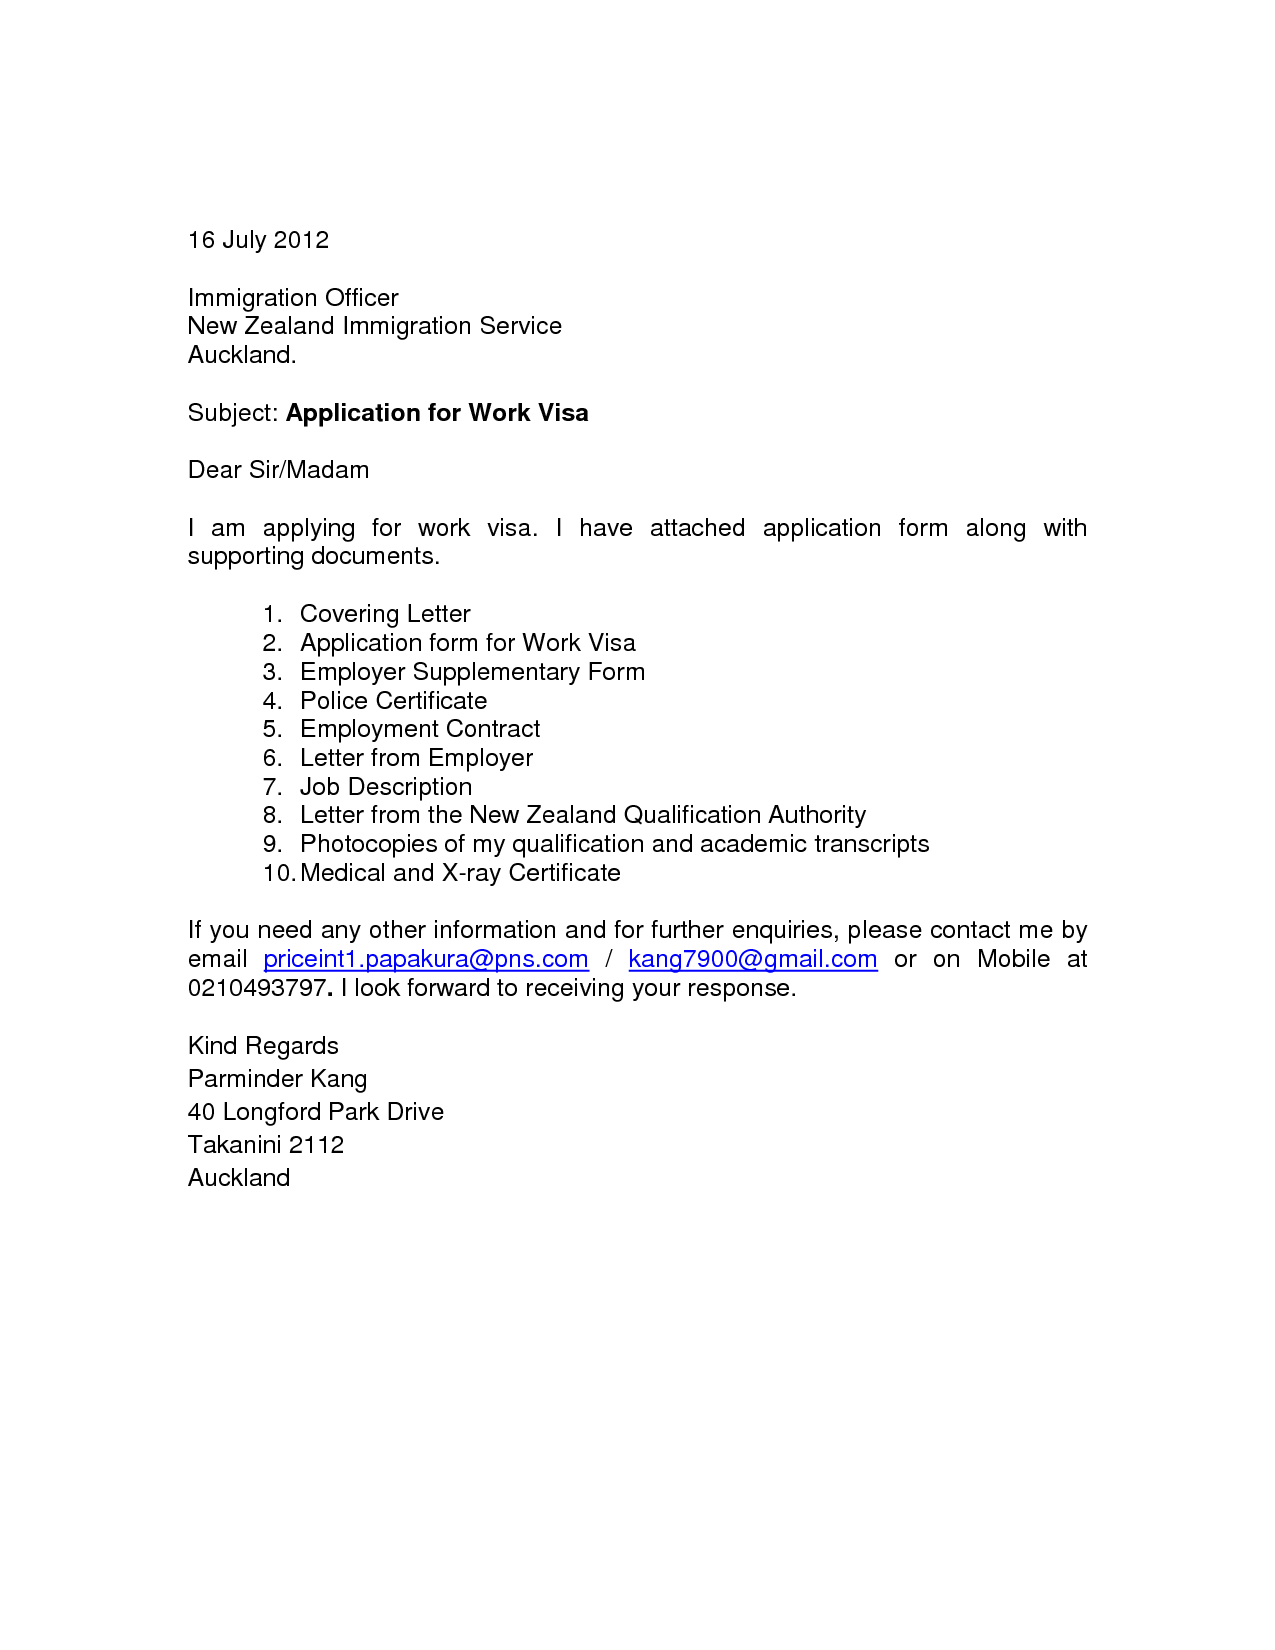 Immigration Officer Resume Cover Letter For Visa Application New Zealand Essay Potna Make